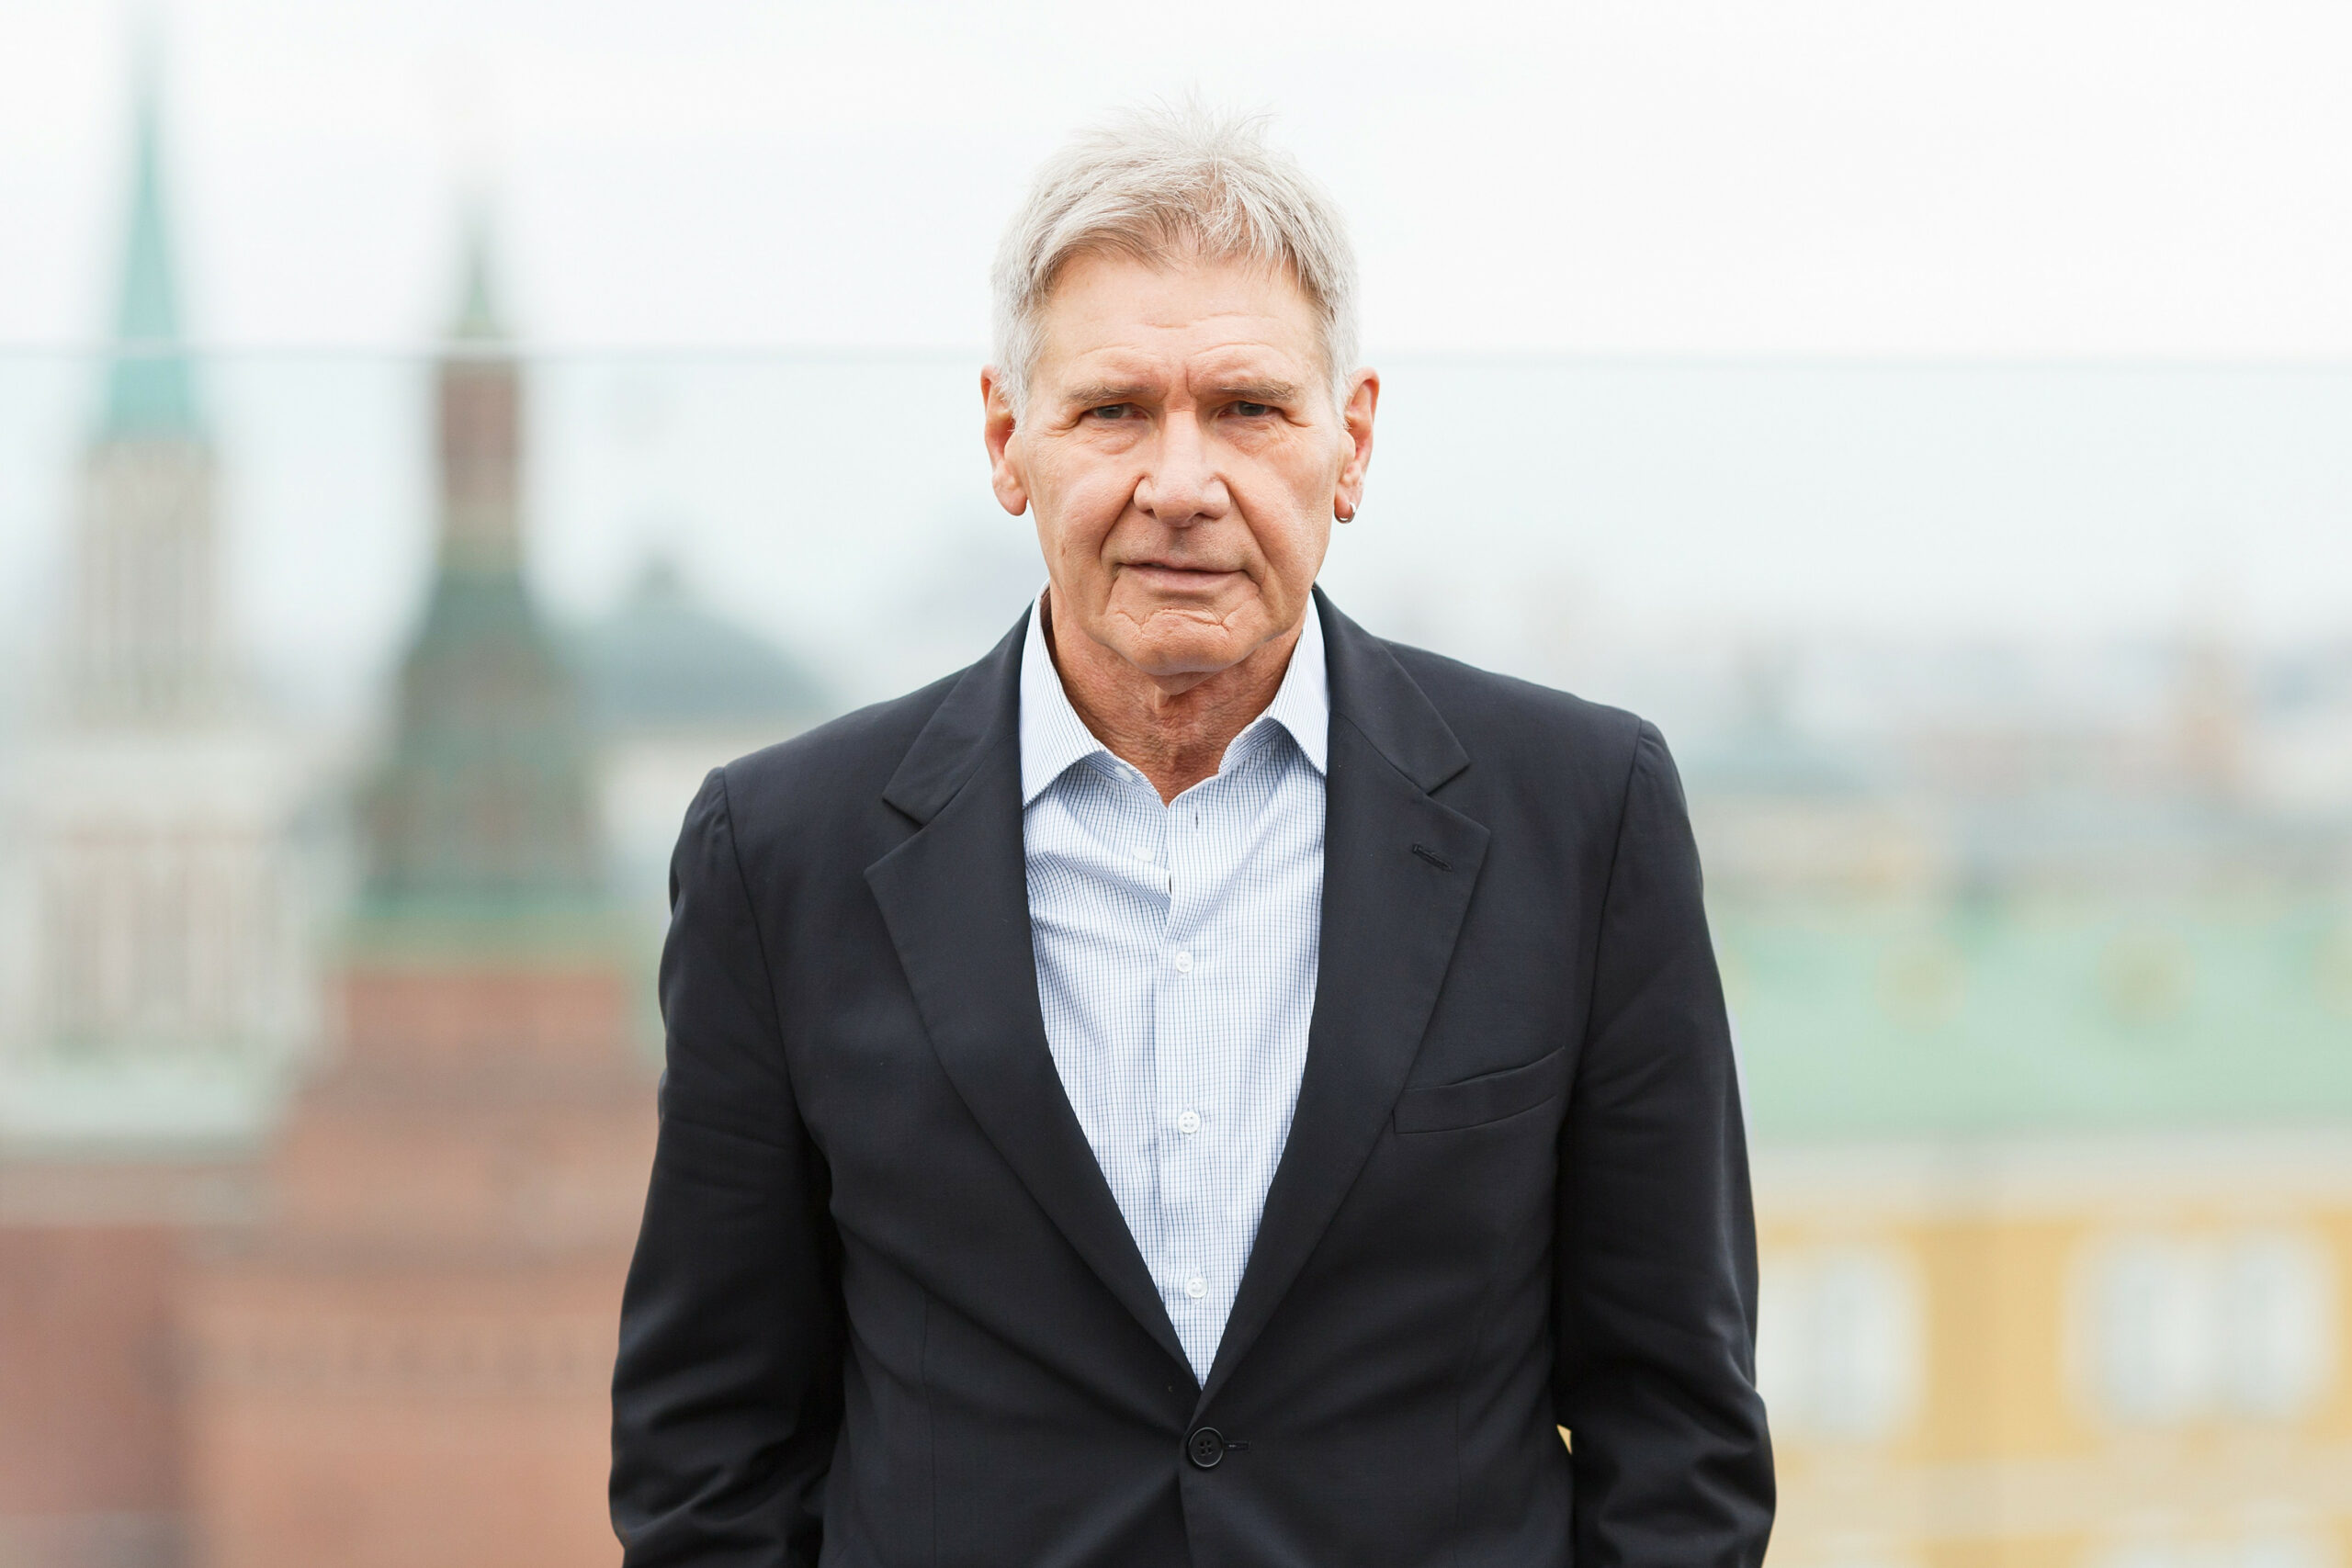 Harrison Ford Net Worth 10: How Much Is Harrison Worth Now?